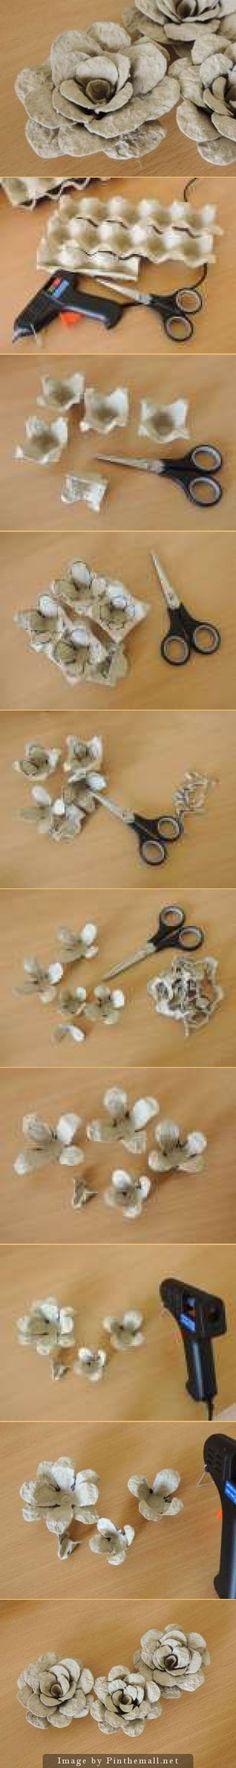 #paper #upcycling The whole detailed photo tutorial on how to make these egg carton flowers - Tutorial foto: trandafiri din cofraje de ouă | Atelierul Grădina cu fluturi